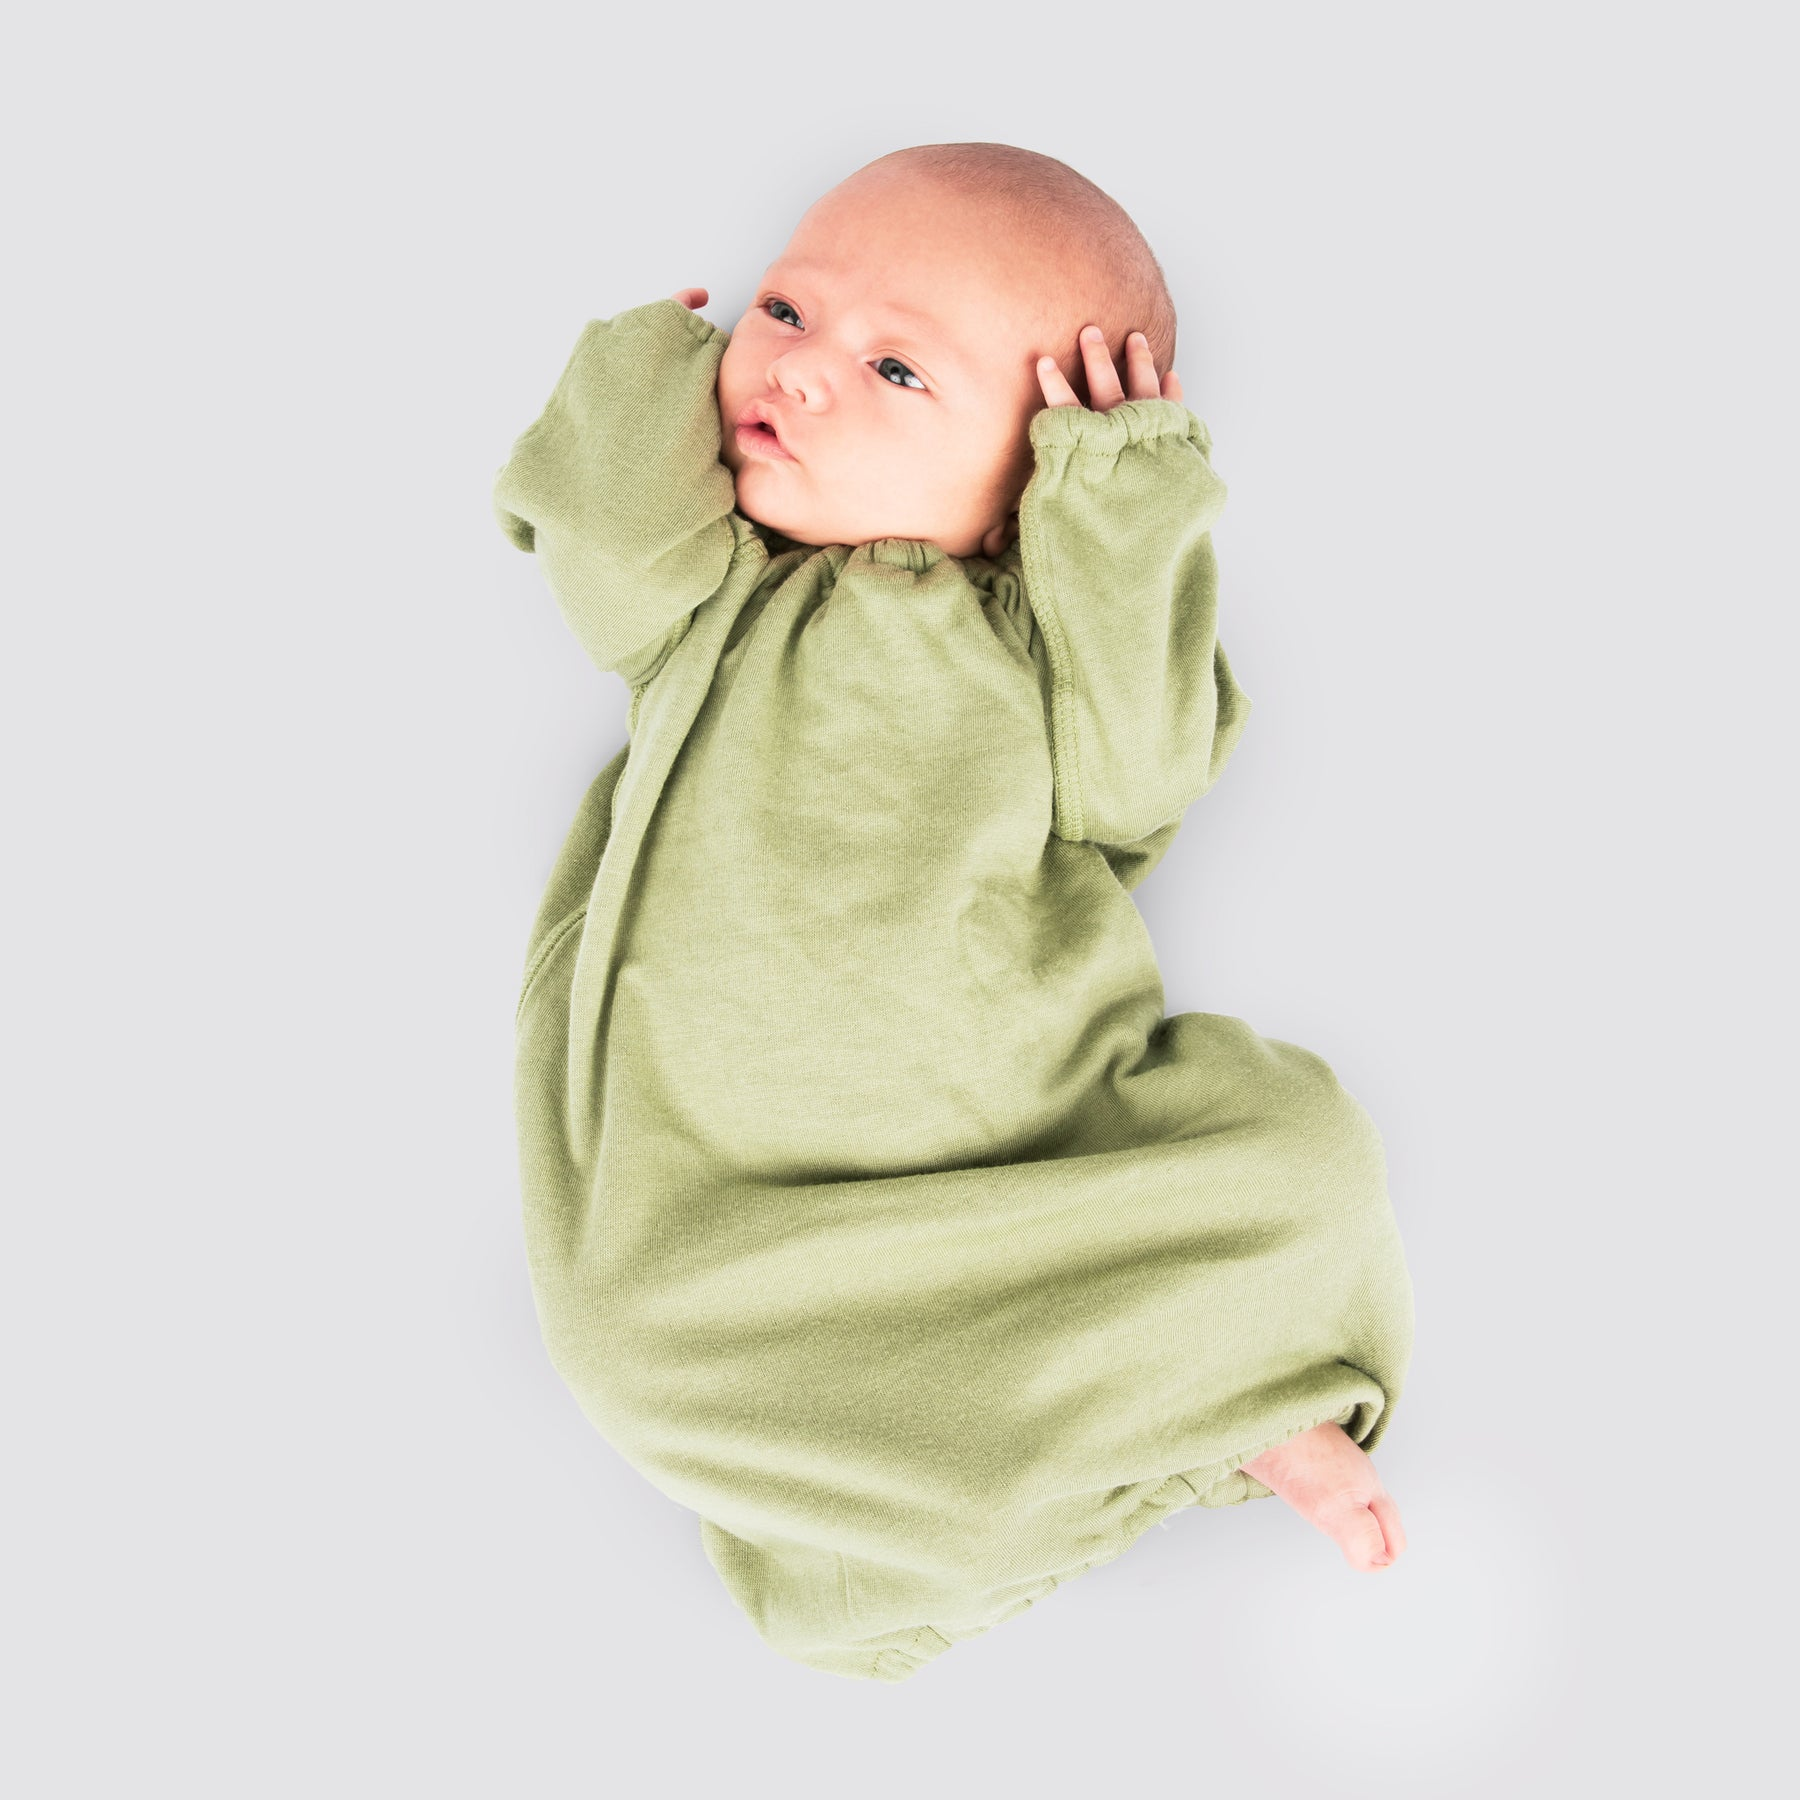 Heavenly soft baby clothes lets you effortlessly dress and undress your baby. An absolute essential for every happy baby. Bamboo and organic cotton. Gender Neutral. Mommy and me clothes. Made in USA.